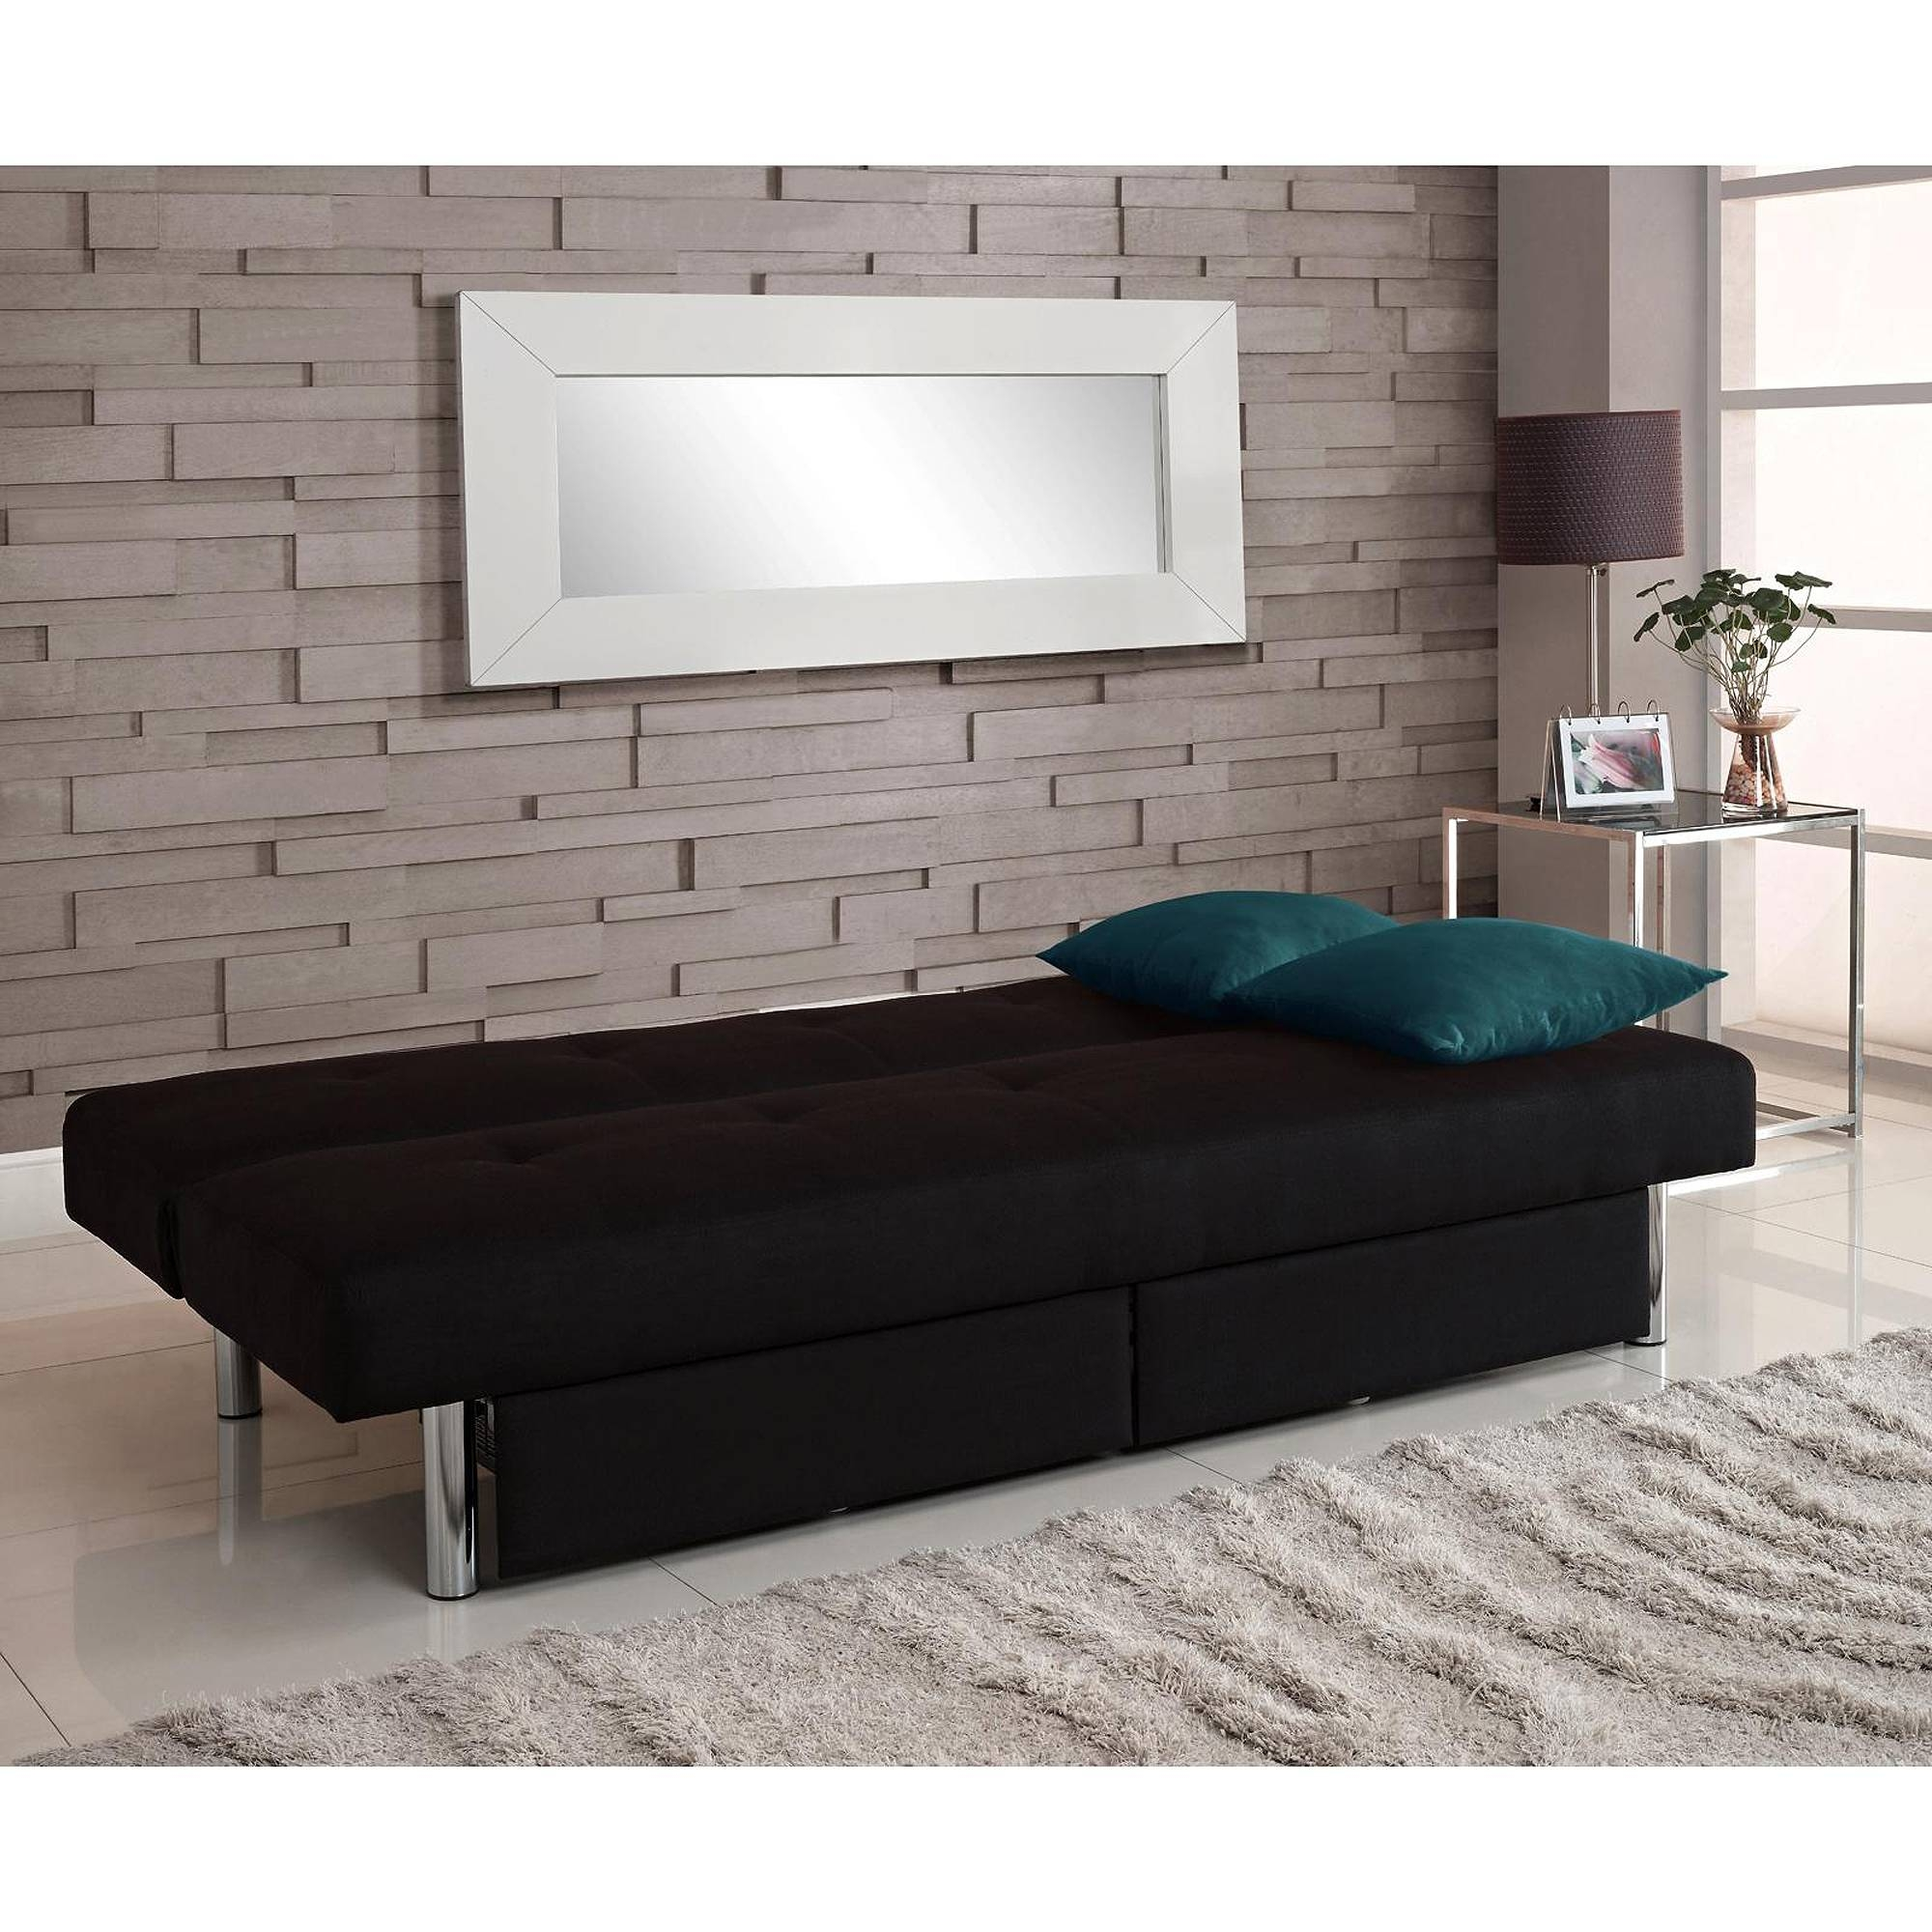 Furniture: Futon Kmart For Easily Convert To A Bed — Iahrapd2016 pertaining to Kmart Futon Beds (Image 4 of 15)